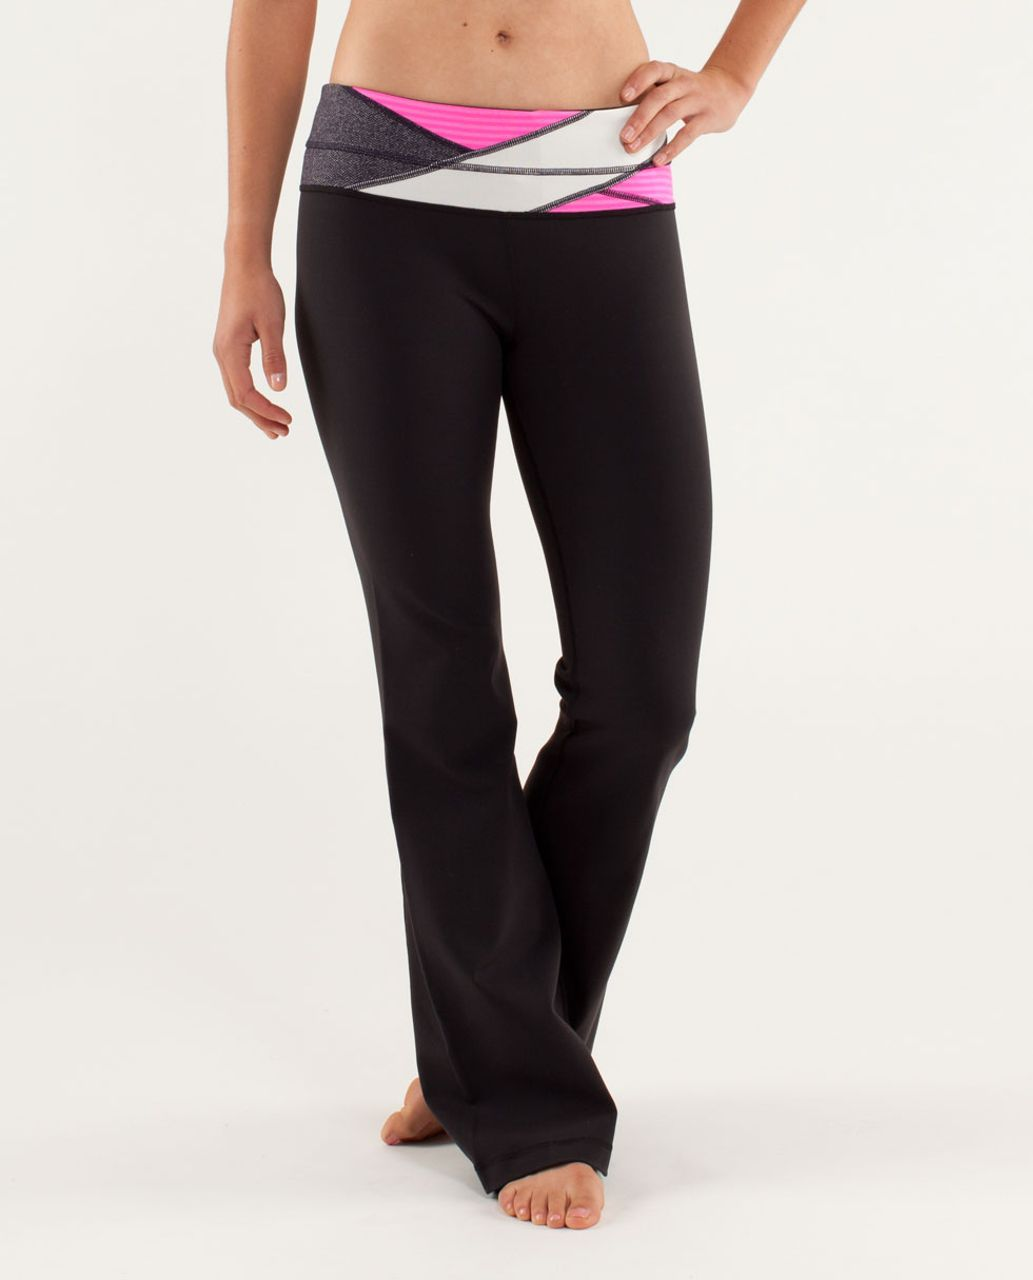 Lululemon Groove Pant *Slim (Regular) - Black / Quilting Winter 10